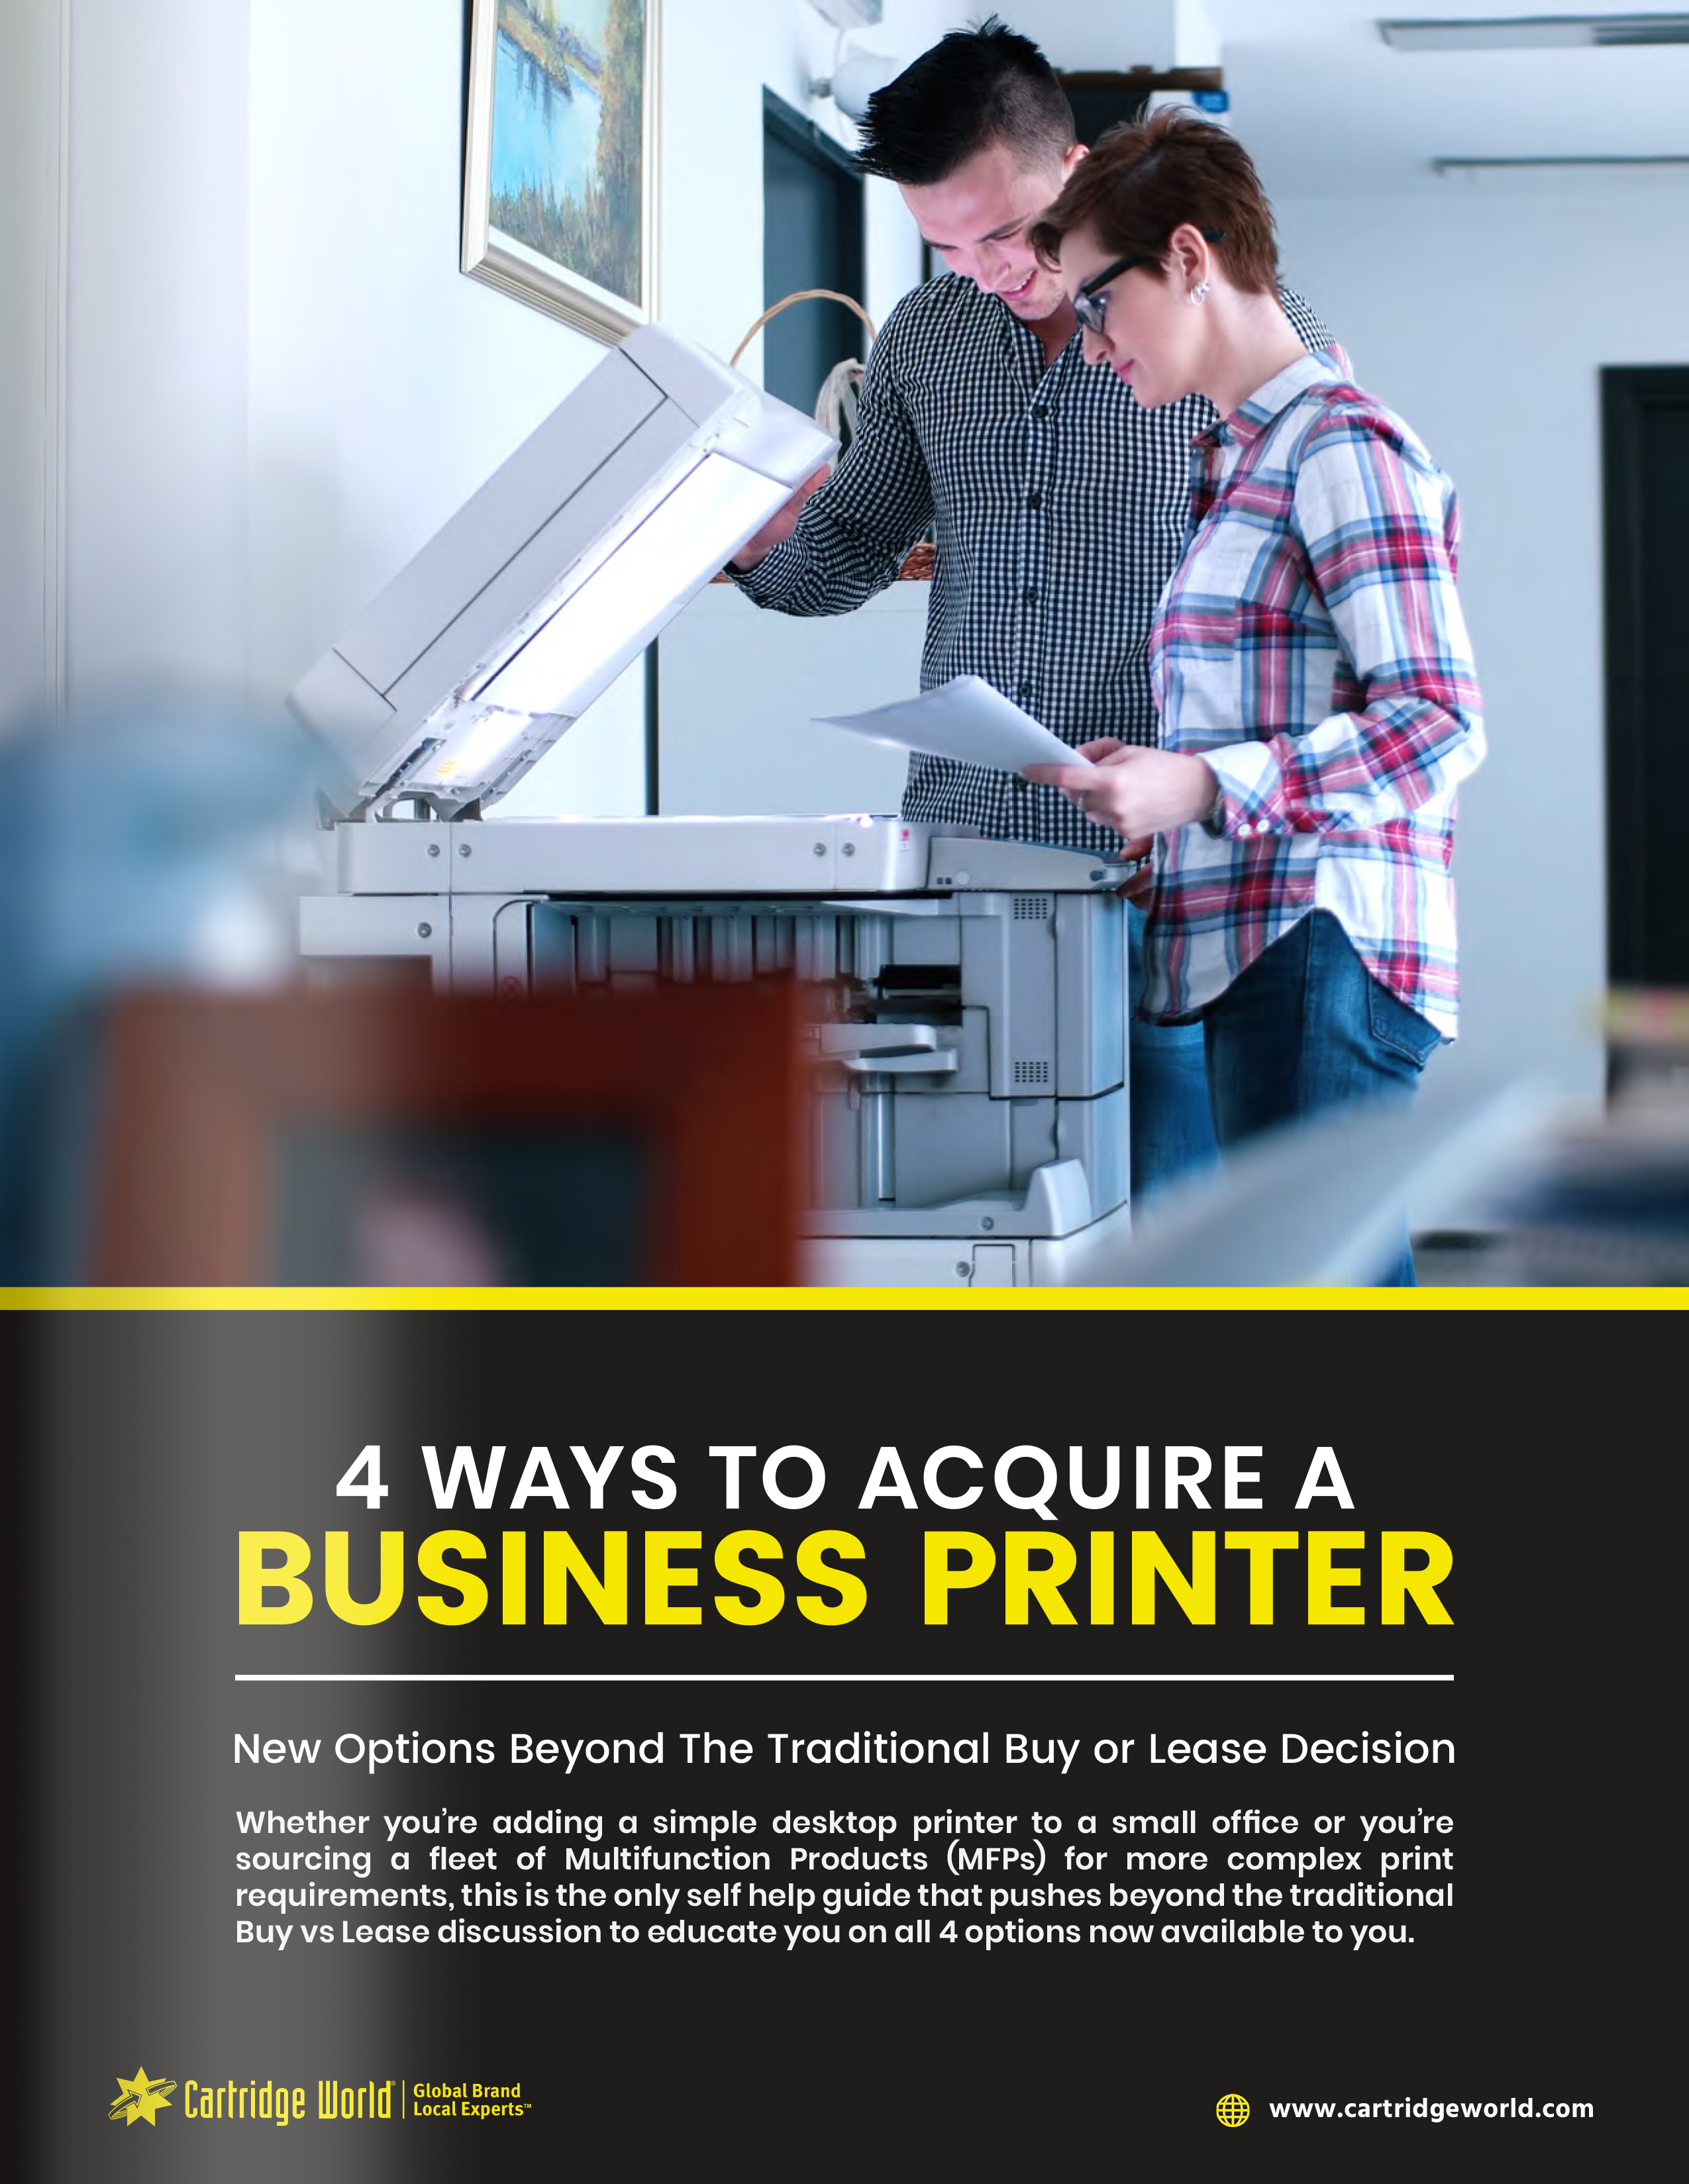 4 Ways to Acquire a Business Printer